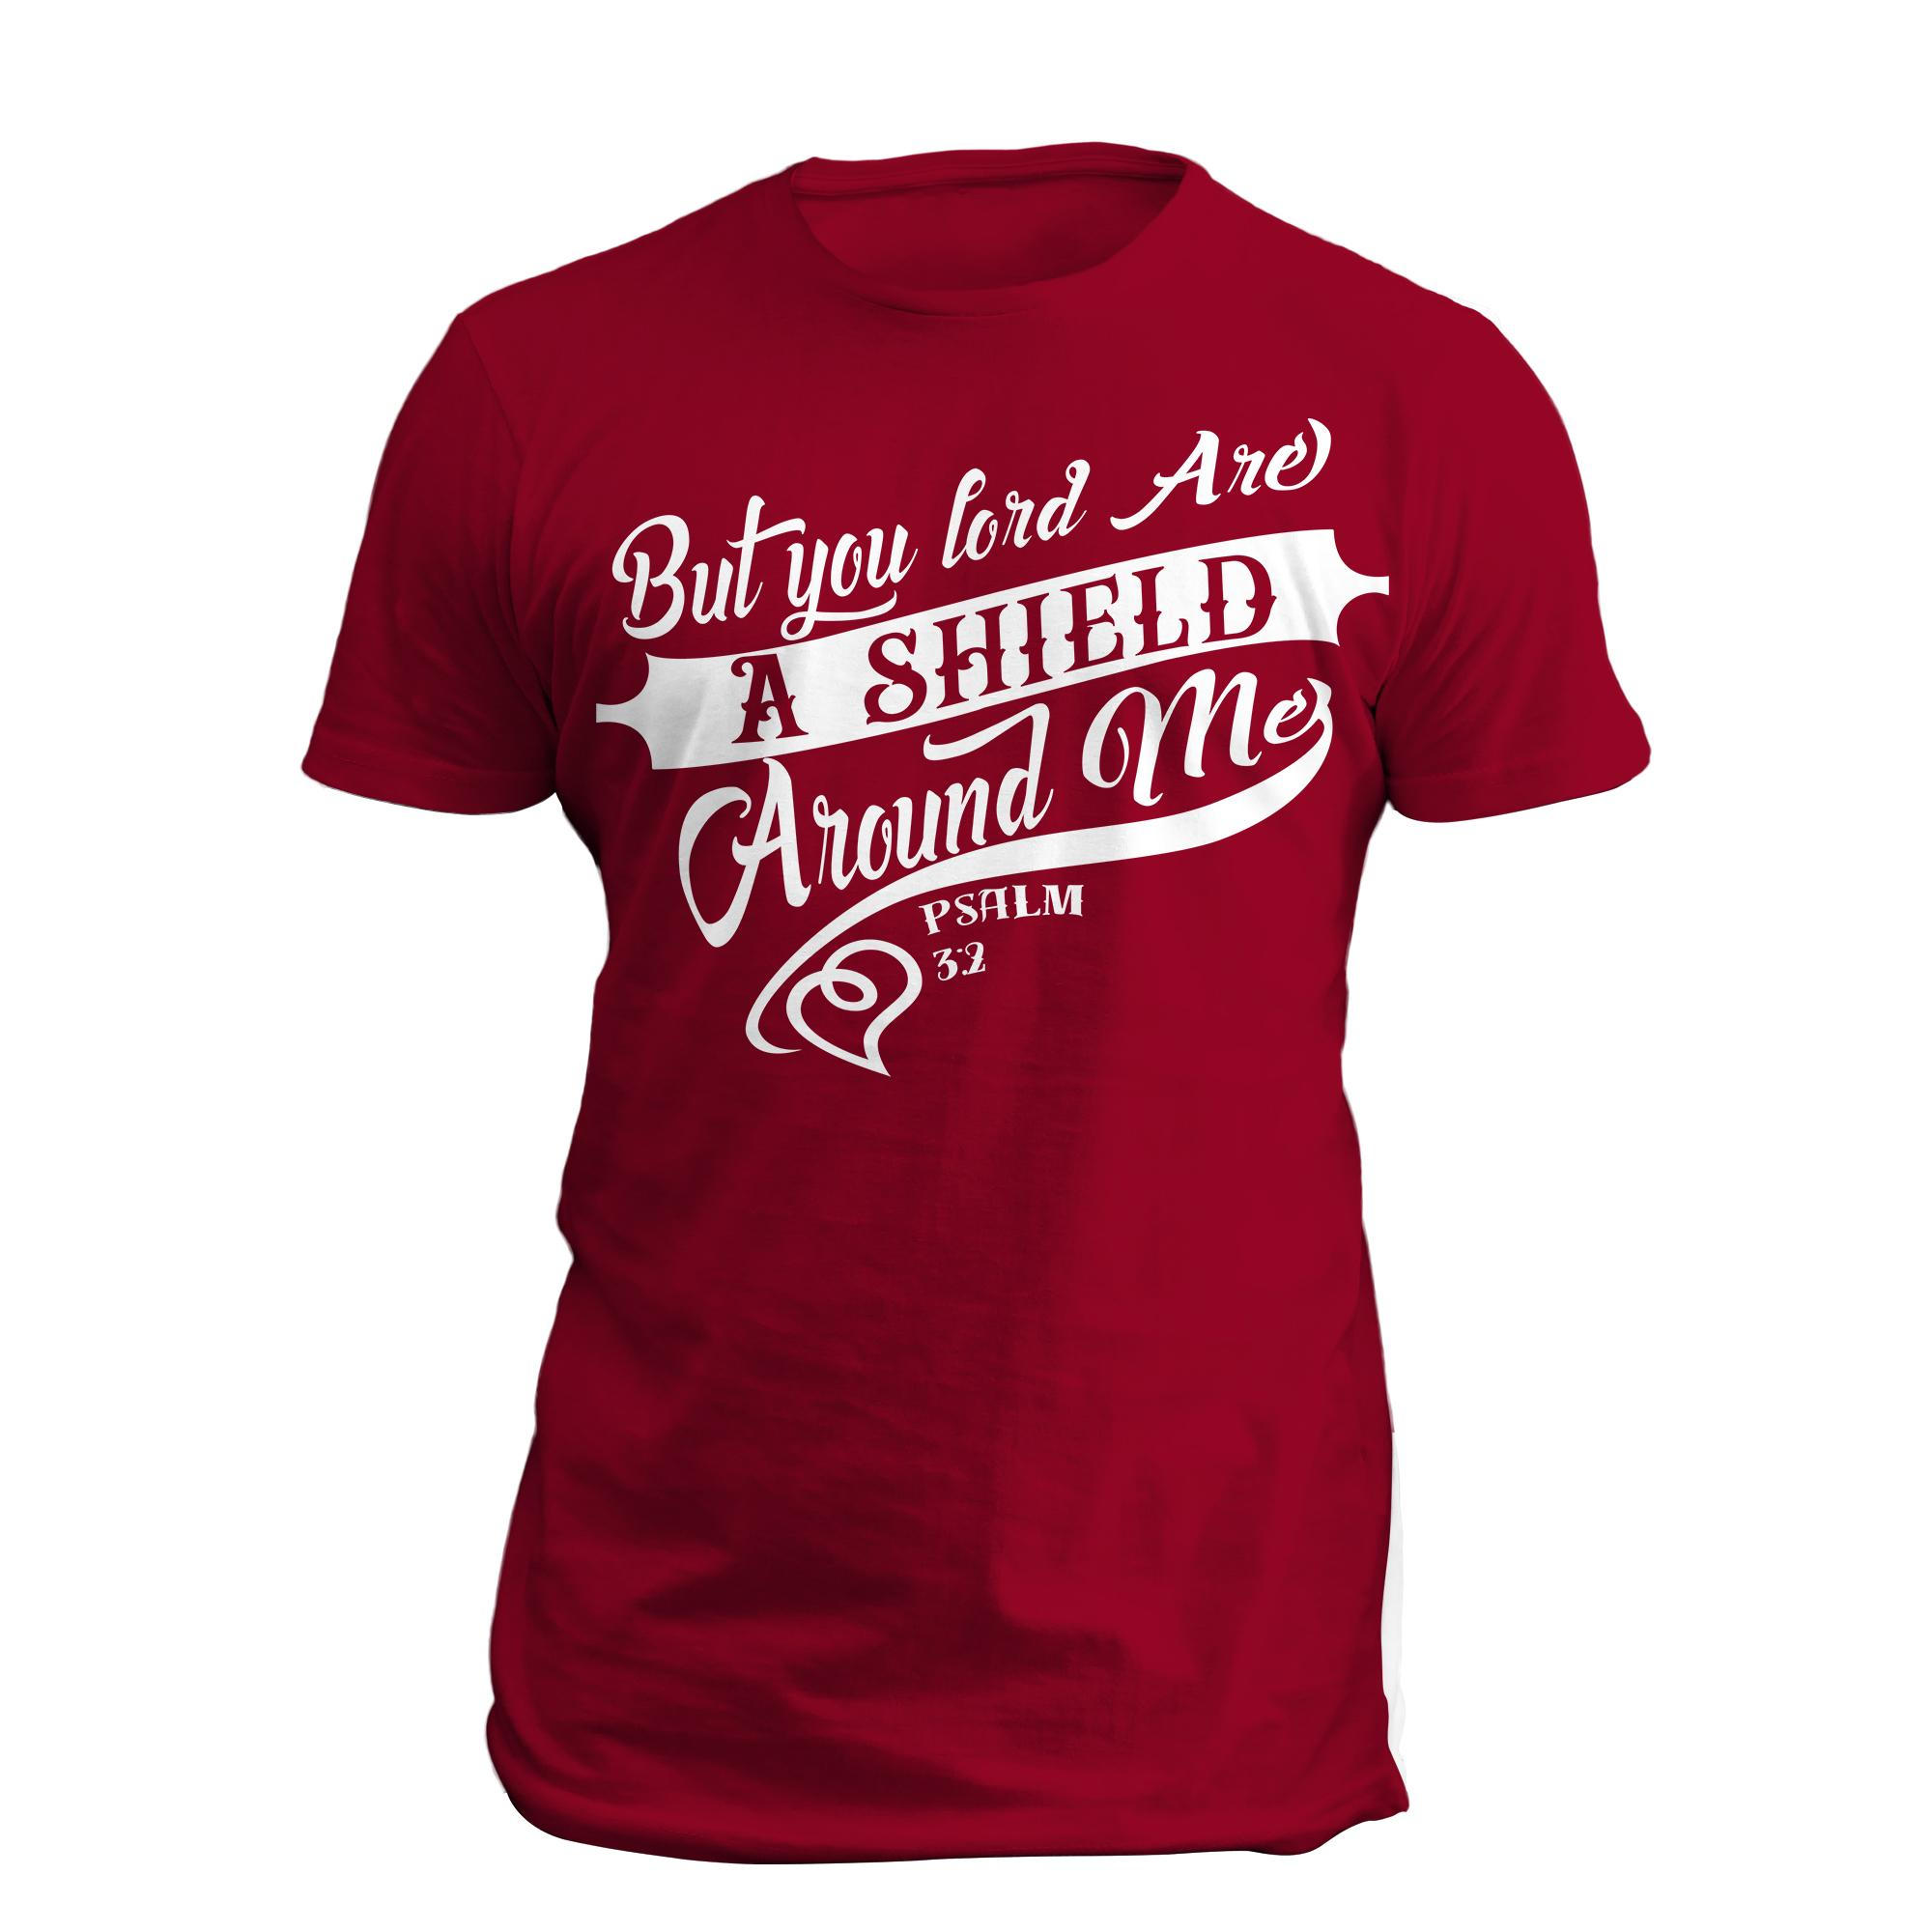 e8db85efada Inspirational Christian Shirt But You Lord Are A Shield Around Me Psalm 3 2  T